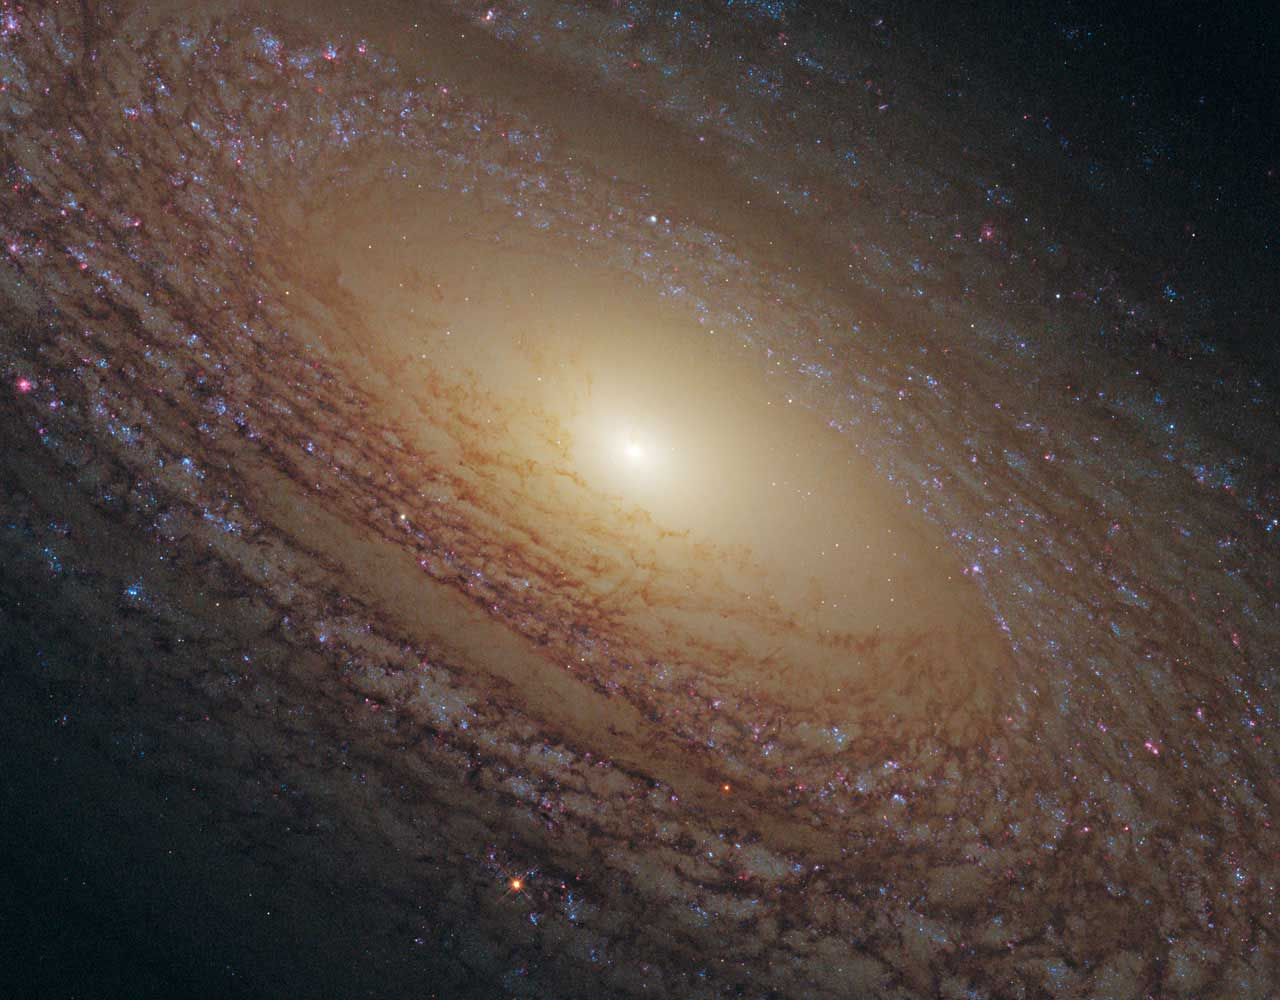 <strong>Spiral Galaxy NGC 2841</strong>:                                                                      A bright white light at the middle of the spiral galaxy marks the galaxy's center. Spiraling outward are dust lanes that are silhouetted against the population of whitish middle-aged stars. Much younger blue stars trace the spiral arms. NGC 2841 lies 46 million light-years away in the constellation of Ursa Major (The Great Bear).                                                                       <i>Image released on Feb. 17, 2010</i>